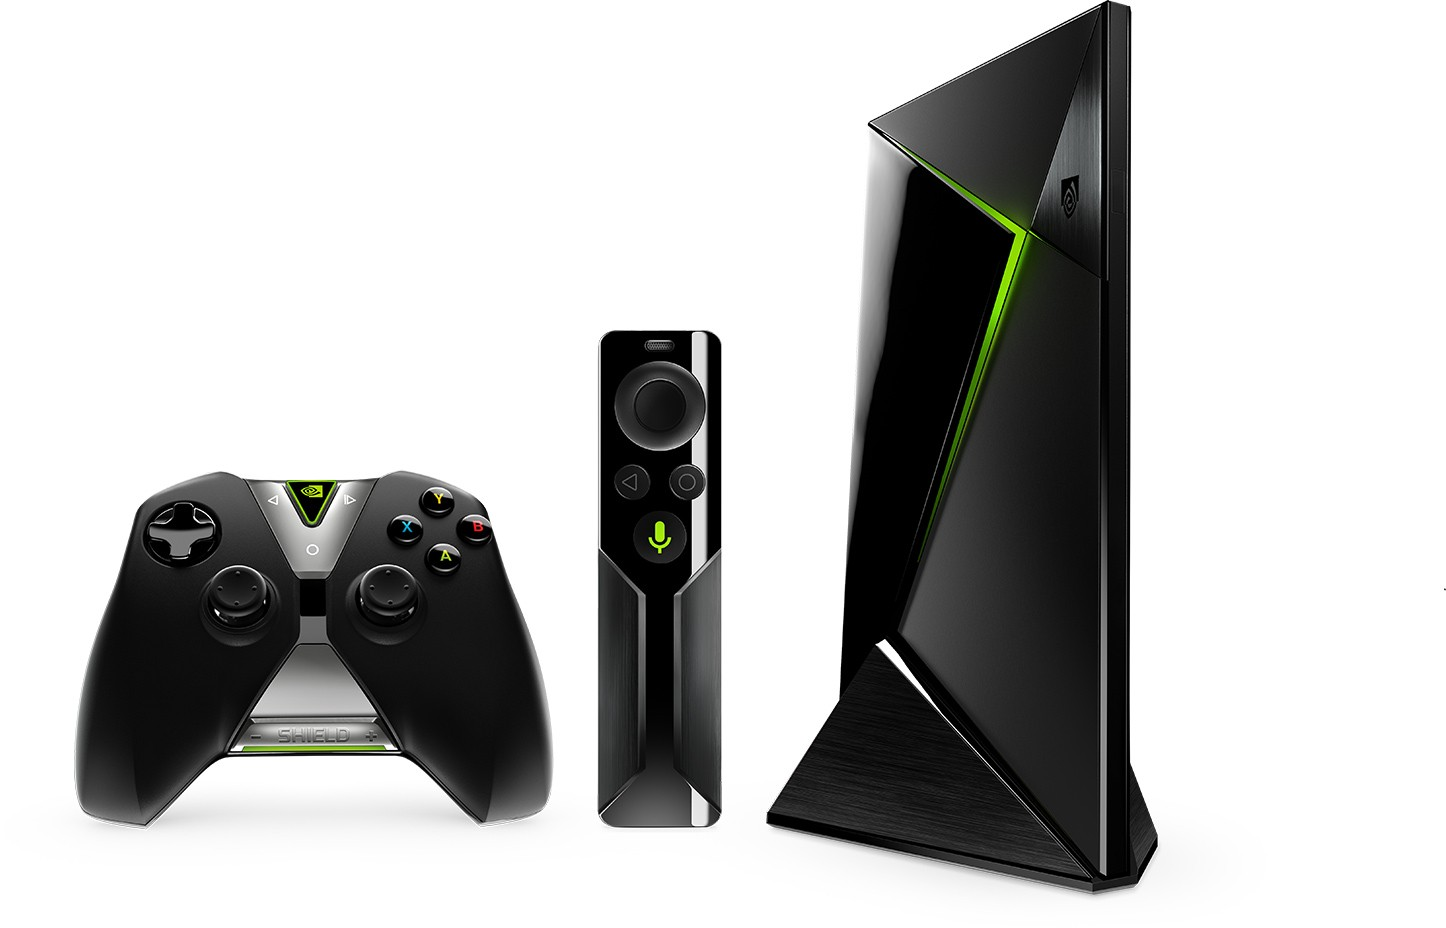 SHIELD Android TV and TV Pro Receive New Firmware - Download